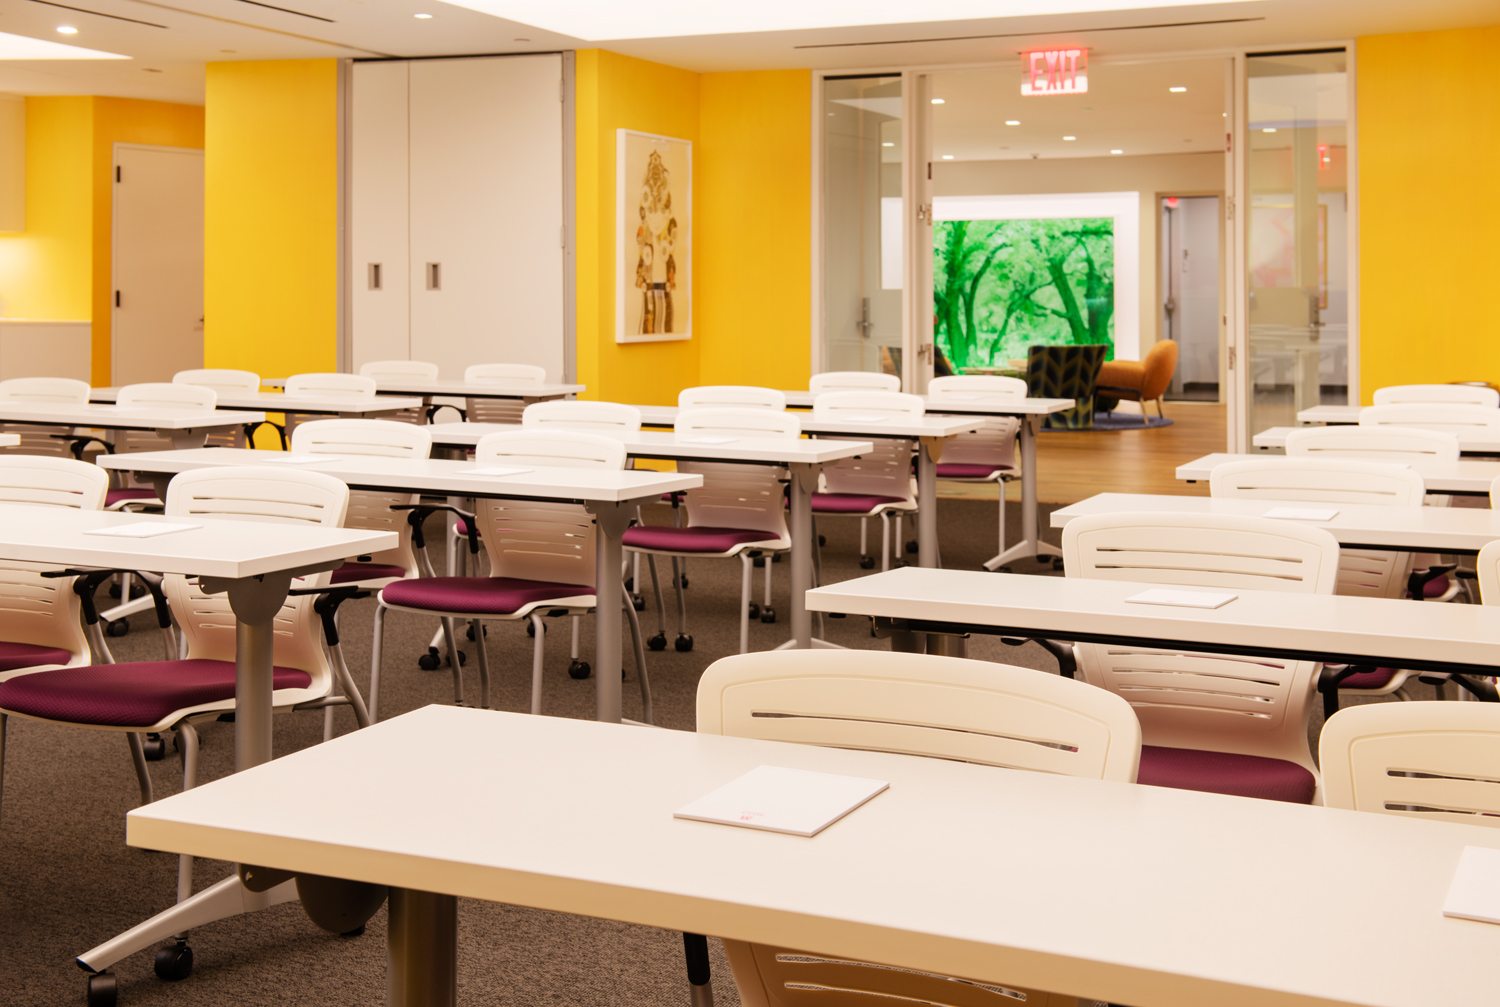 Meet on Madison Marigold Meeting Room Classroom Style with Art in Background